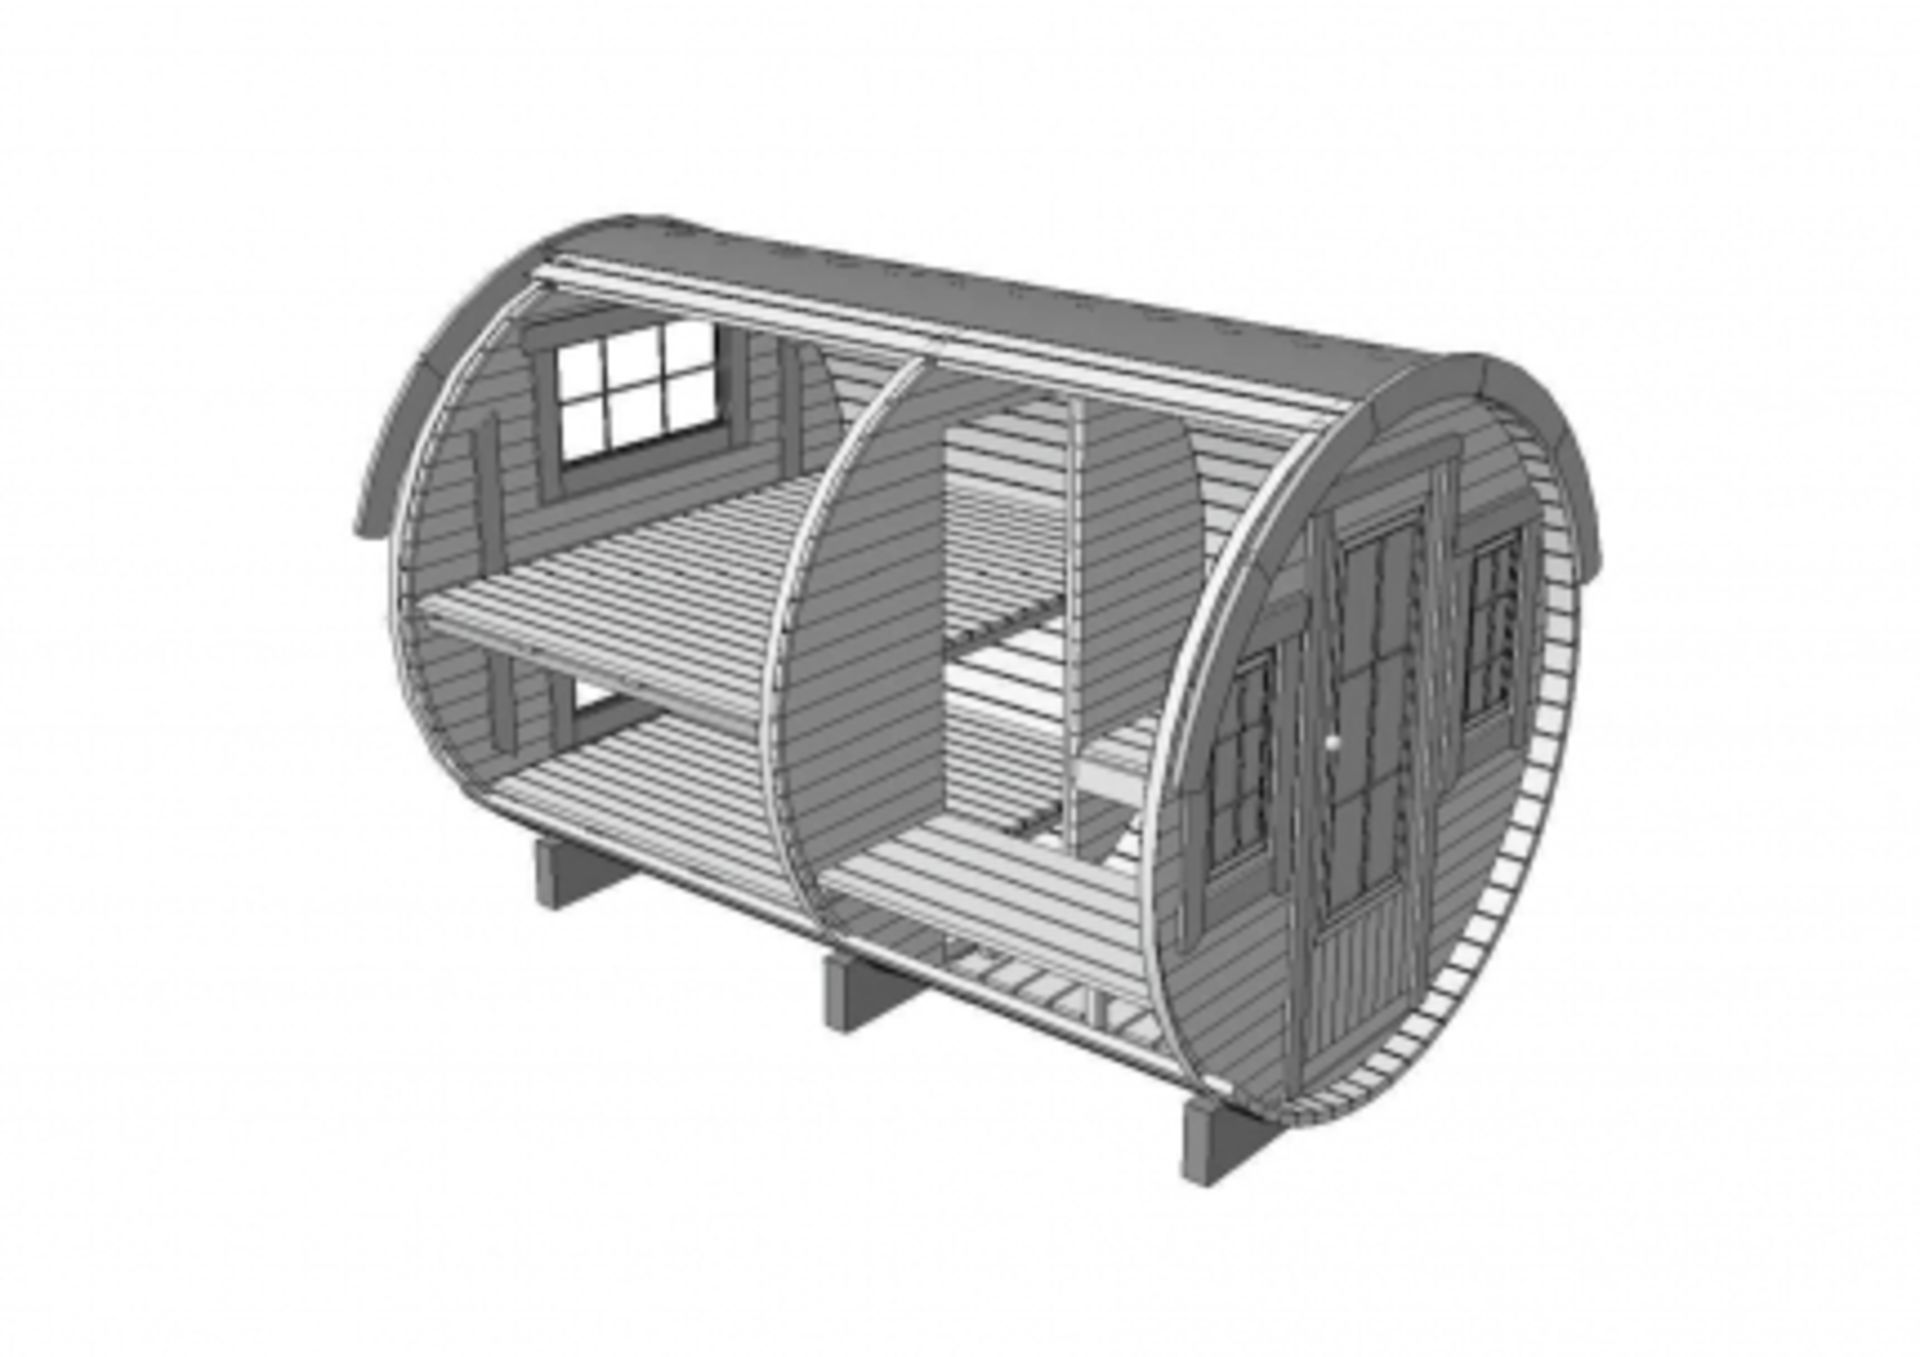 Lot 18003 - V Brand New 2.2 x 3.3m Barrel For Sleeping - Sleeping & Sitting Rooms Inside - Sleeping Room With